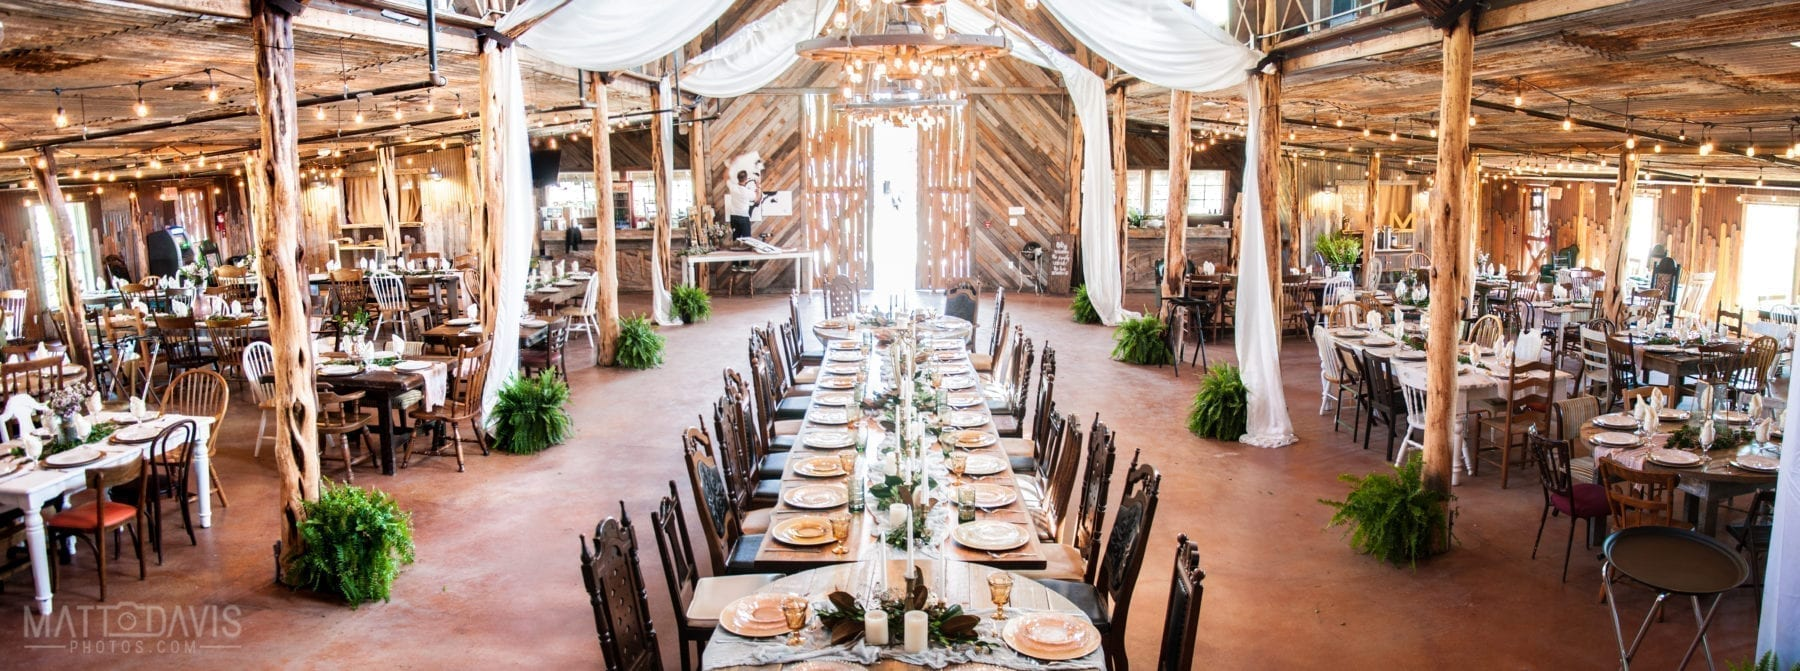 Rancho La Mission Celebrate Life In Rustic Country Style